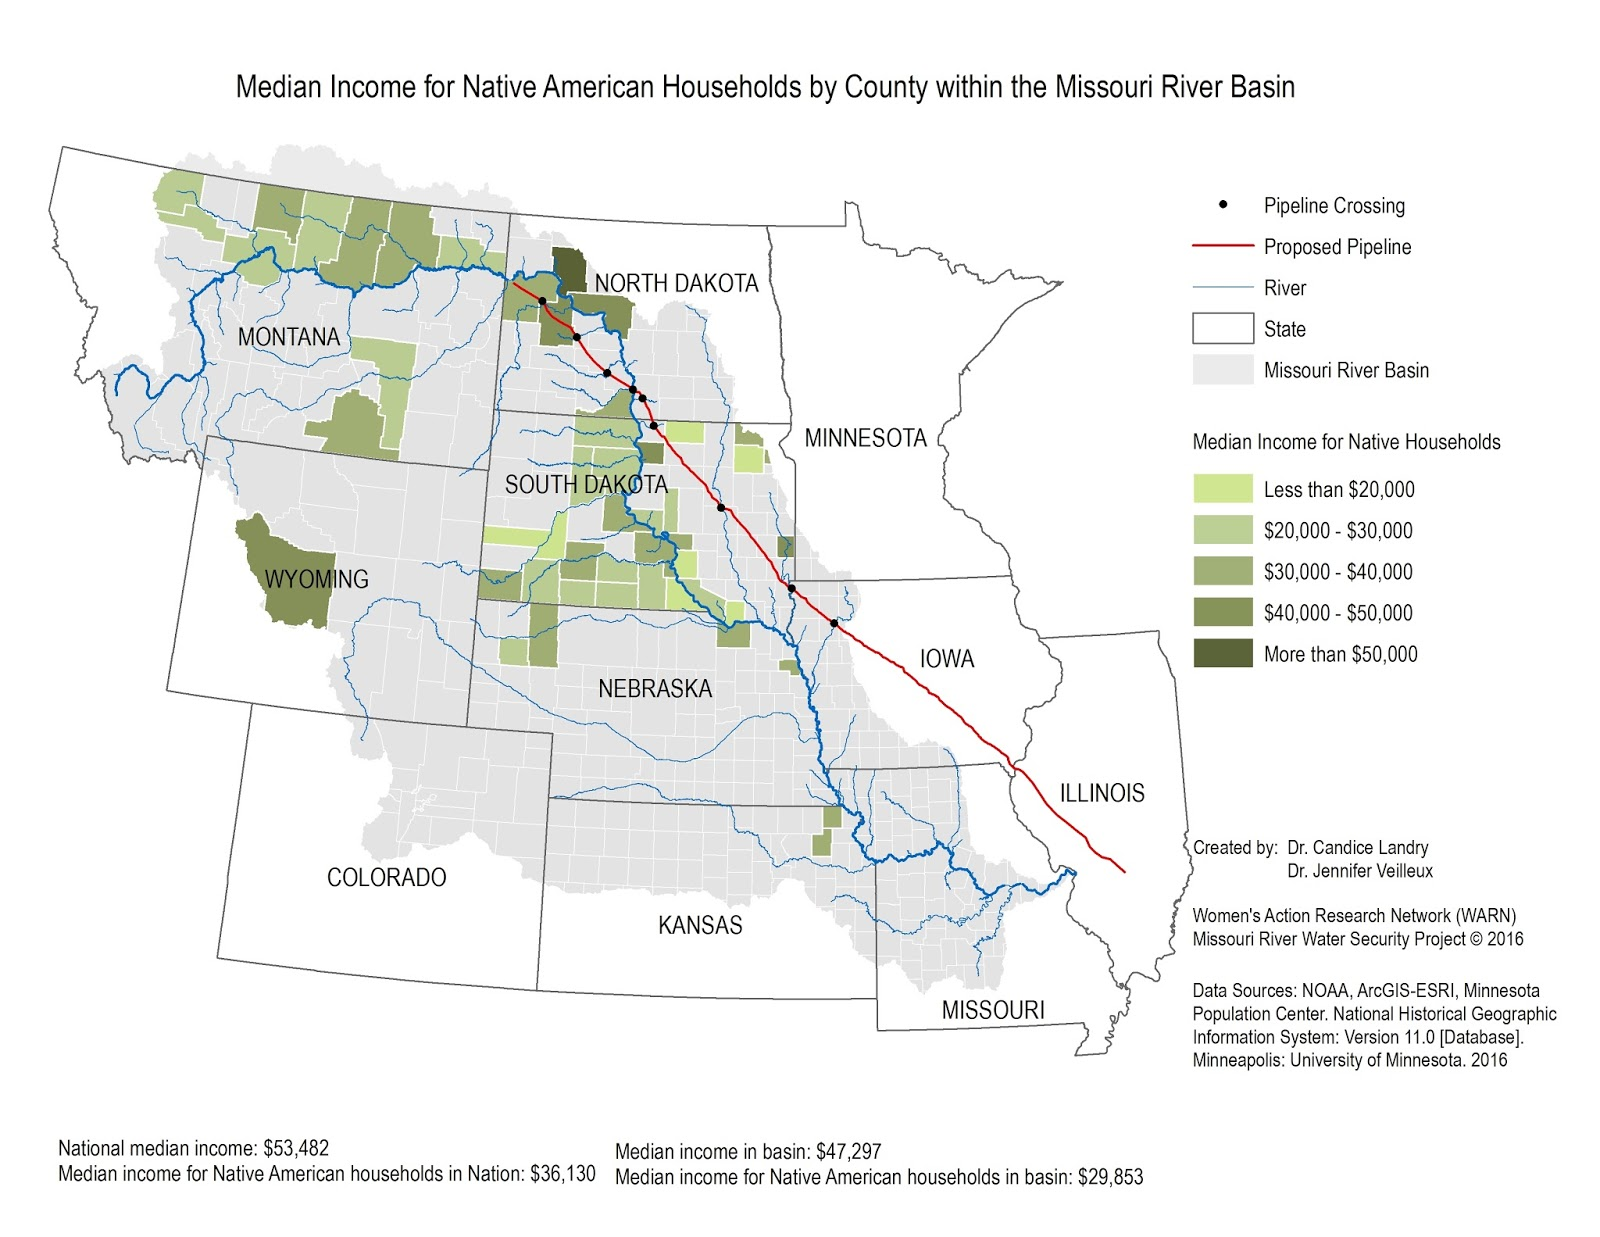 the way of water in e maps of the native americans living in